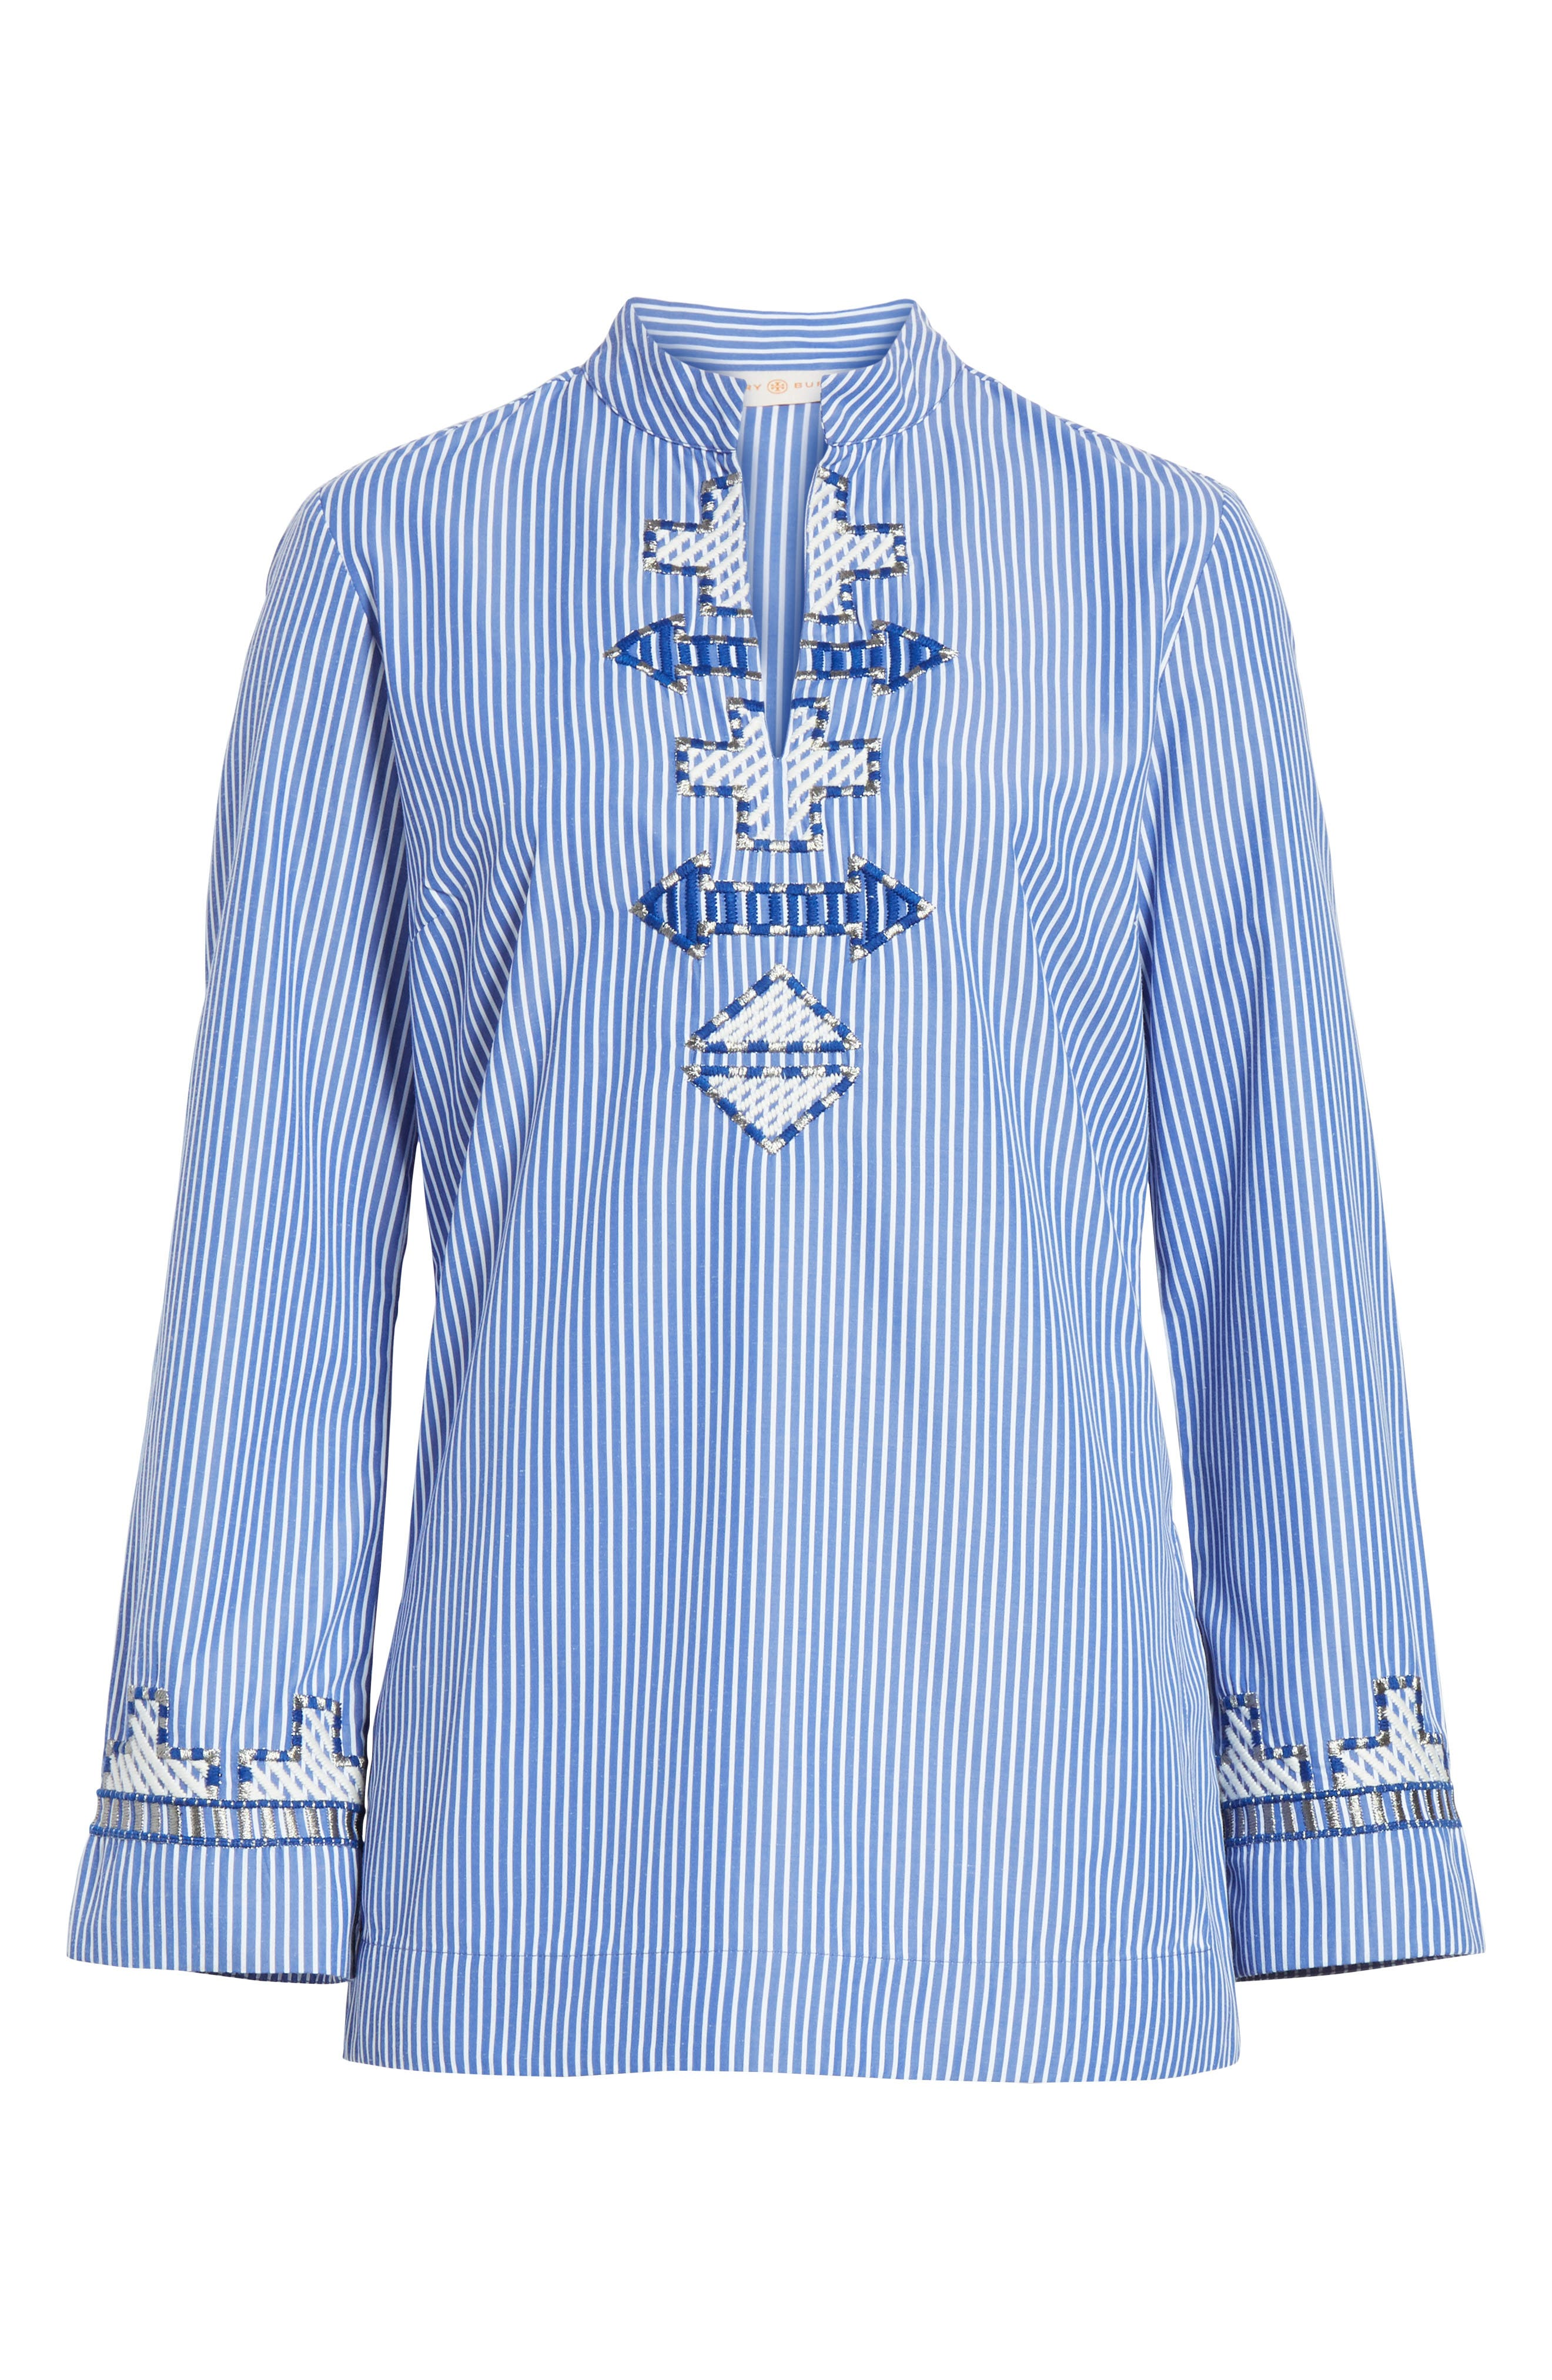 Tory Embroidered Stripe Tunic,                             Alternate thumbnail 6, color,                             Blue/ White